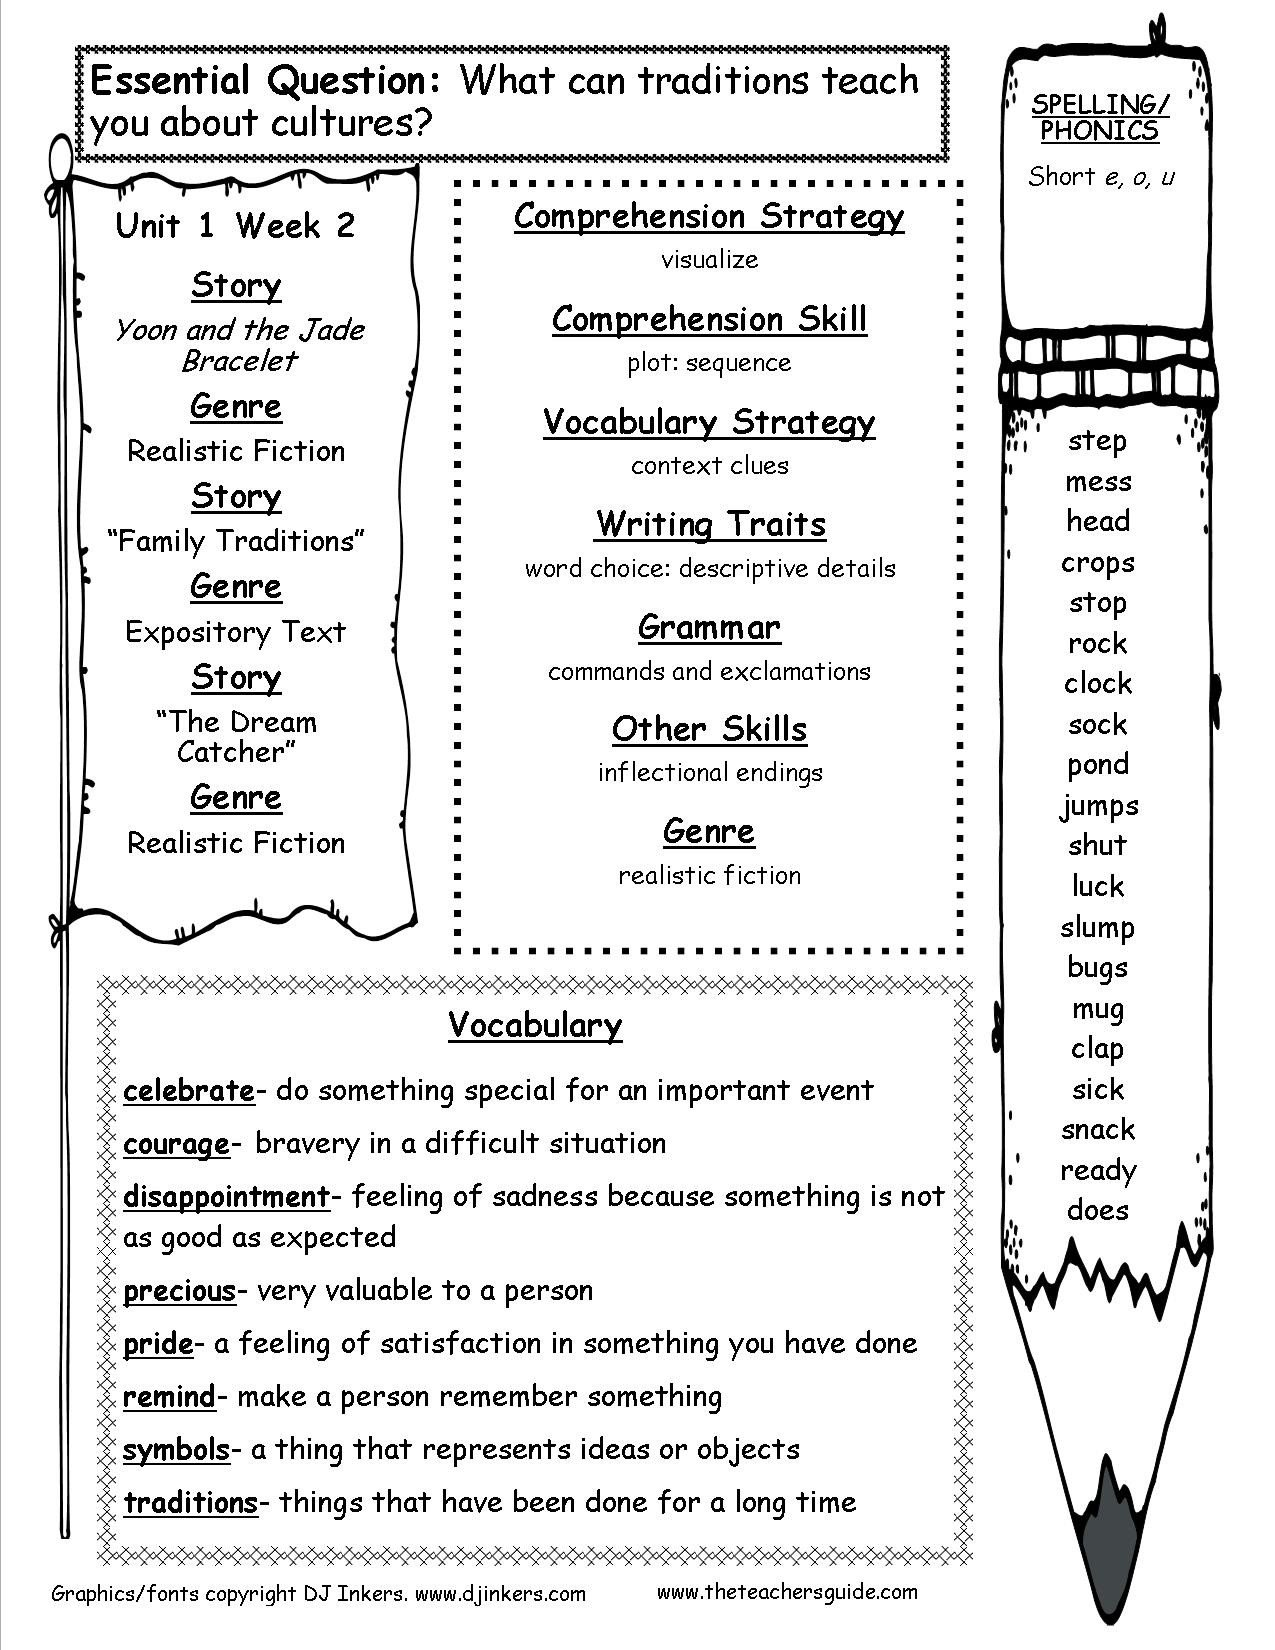 9th Grade Reading Worksheets Mcgraw Wonders Third Grade Resources and Printouts 3rd